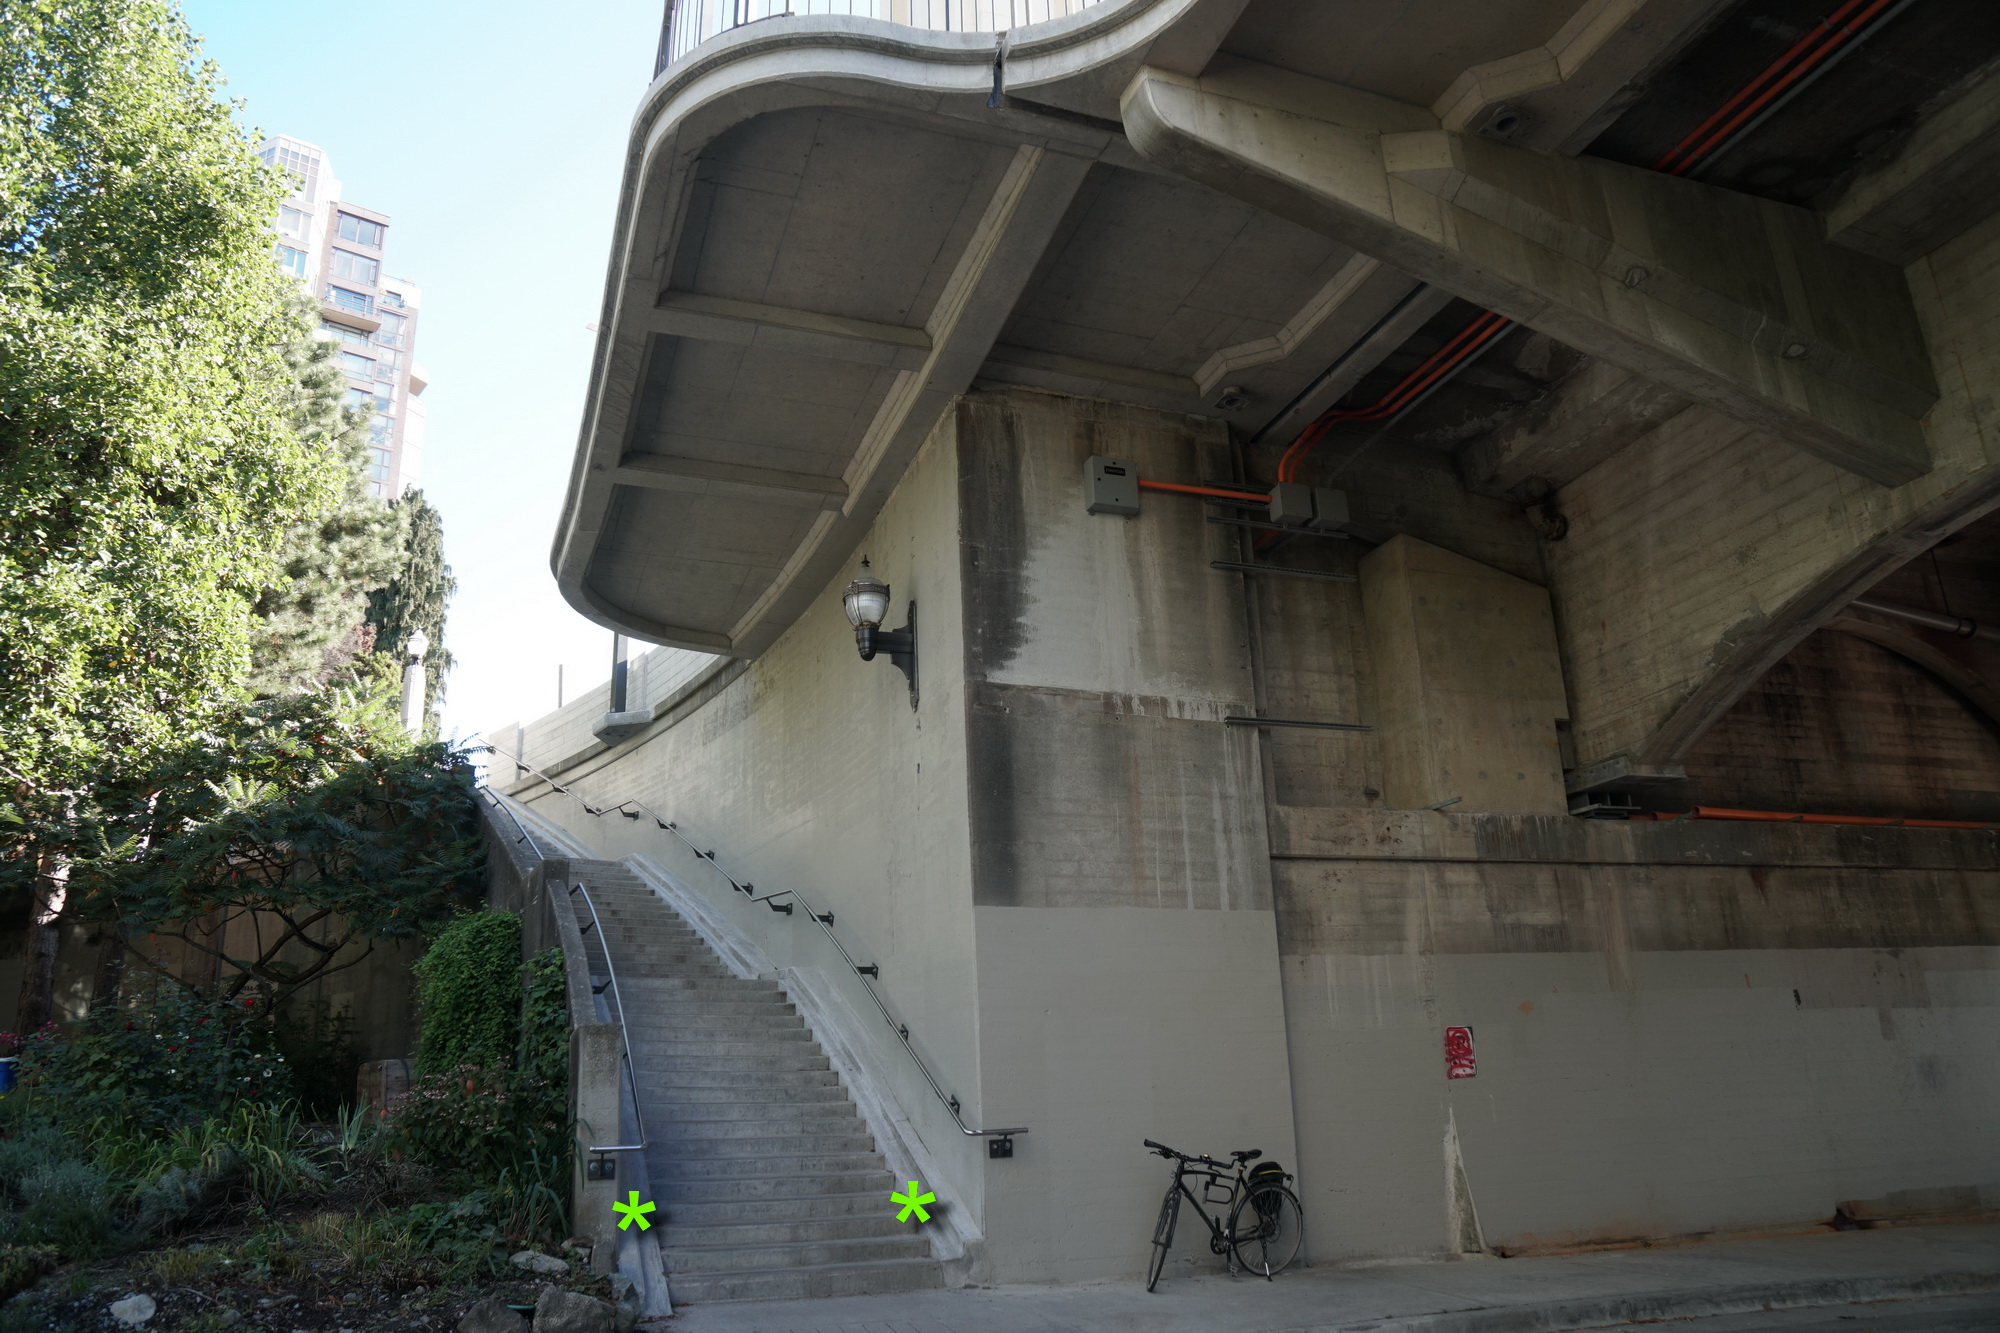 West-side stairs, with bike-friendly runnells (*). And evidence of structural upgrades.